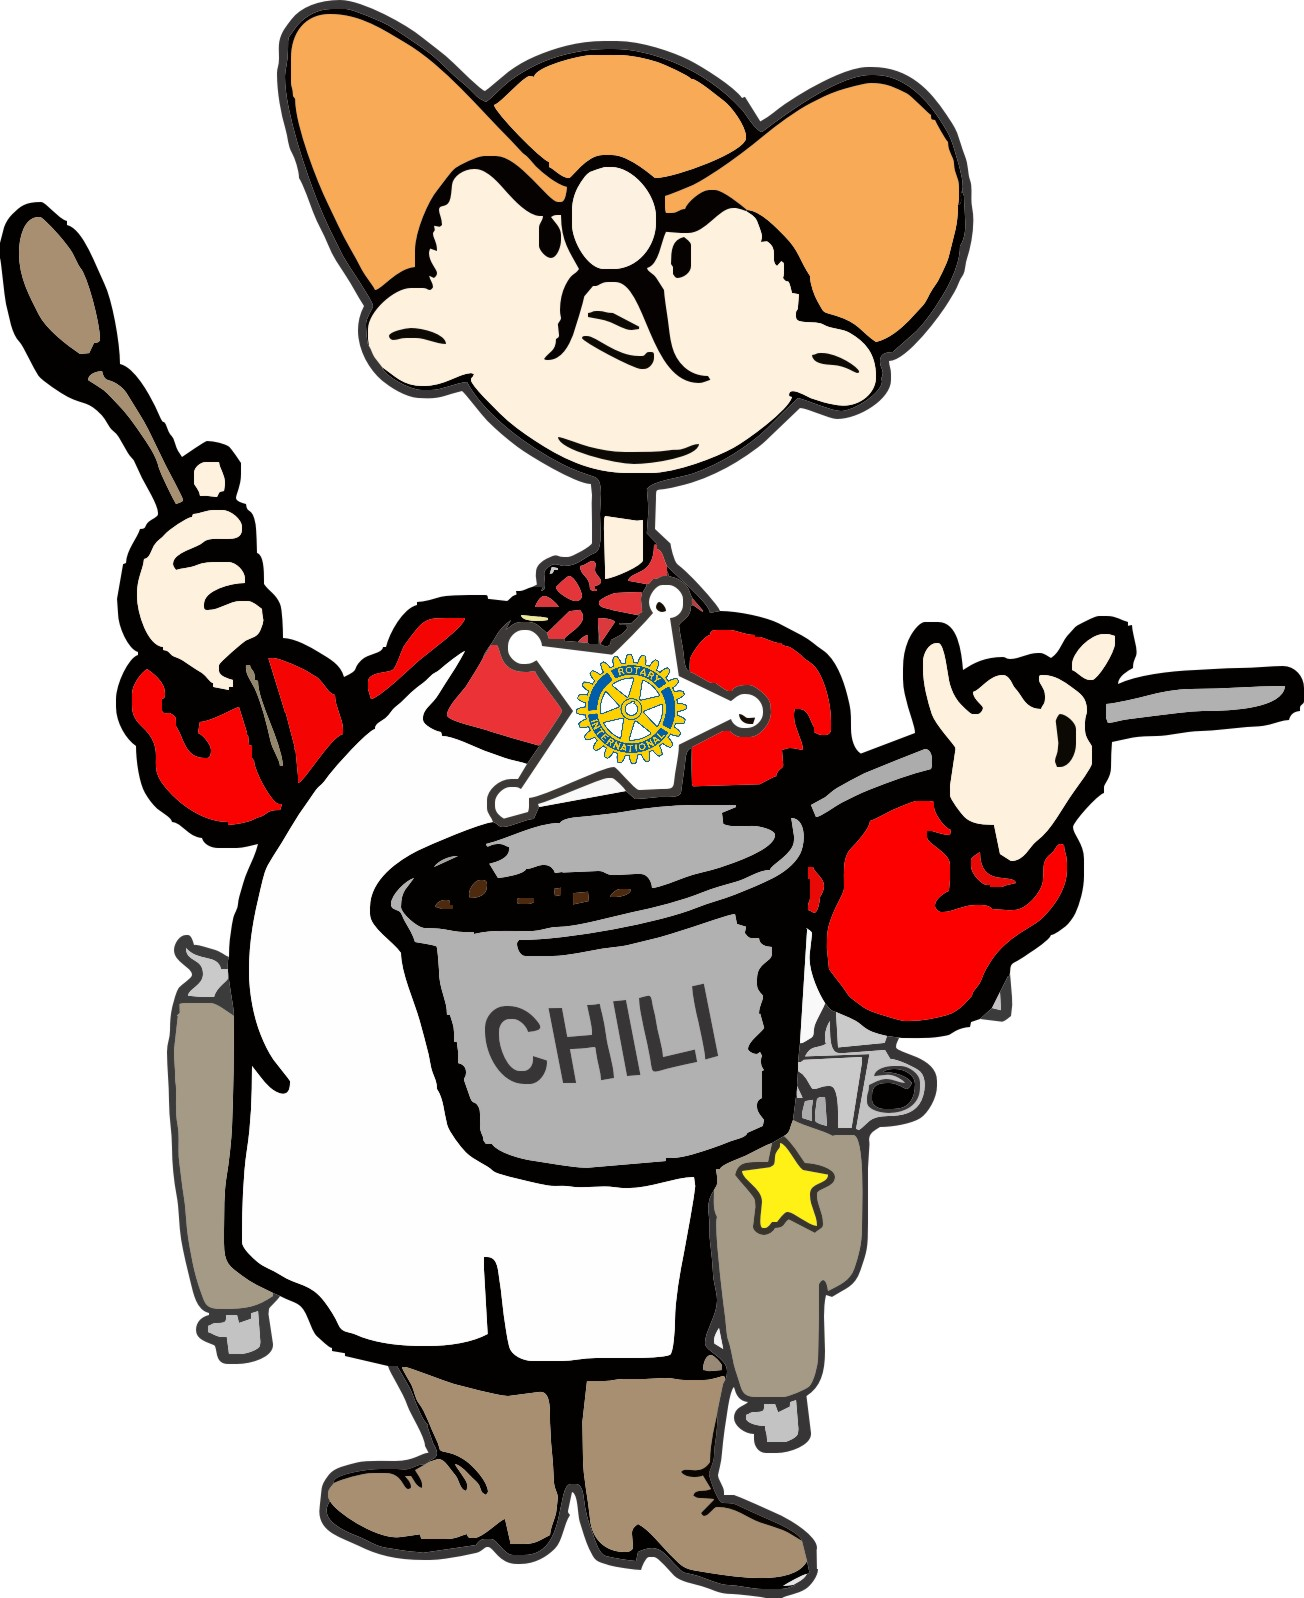 Chili cook off clipart clipartsco for Free chili cook off clipart